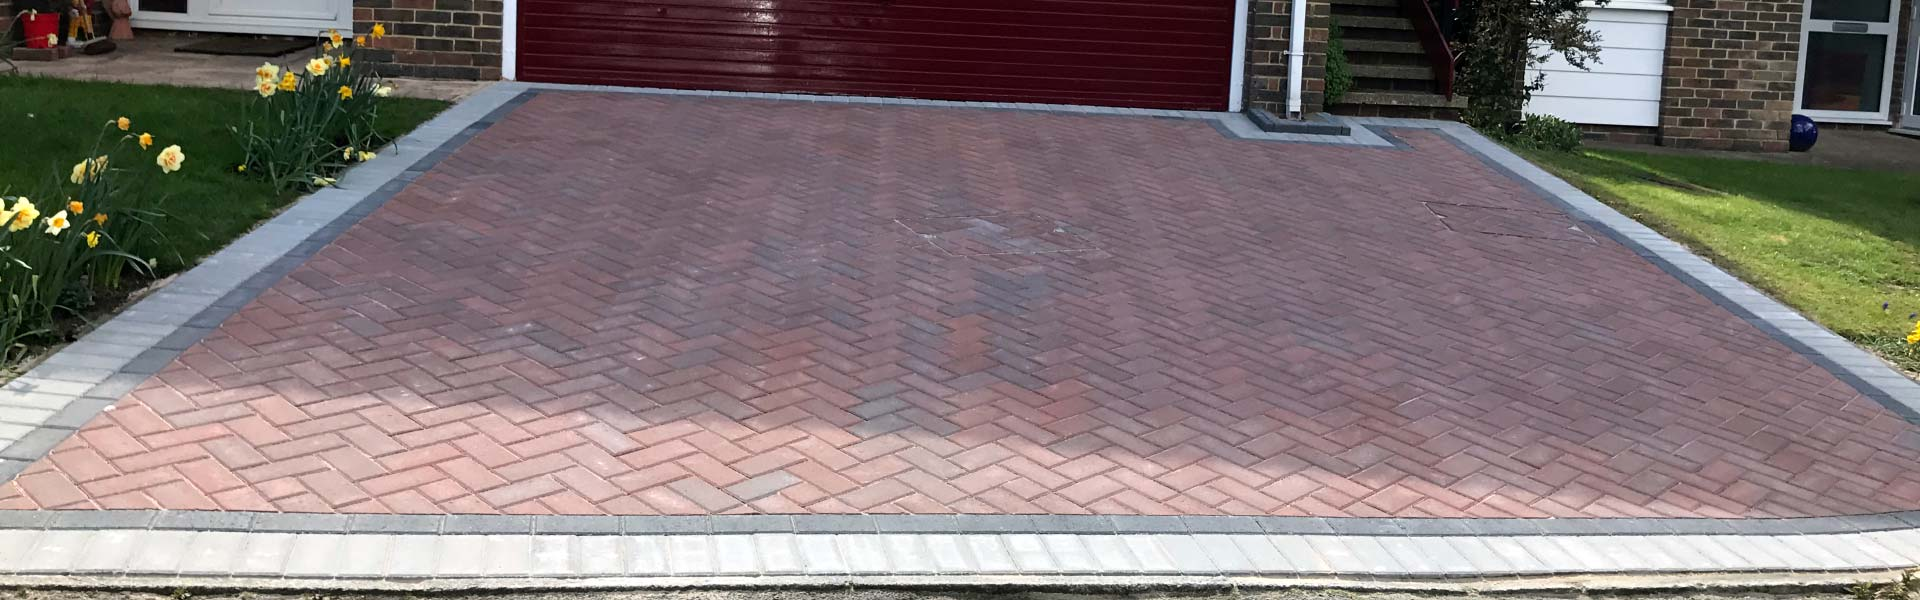 Block Paving Driveways - Areas Covered